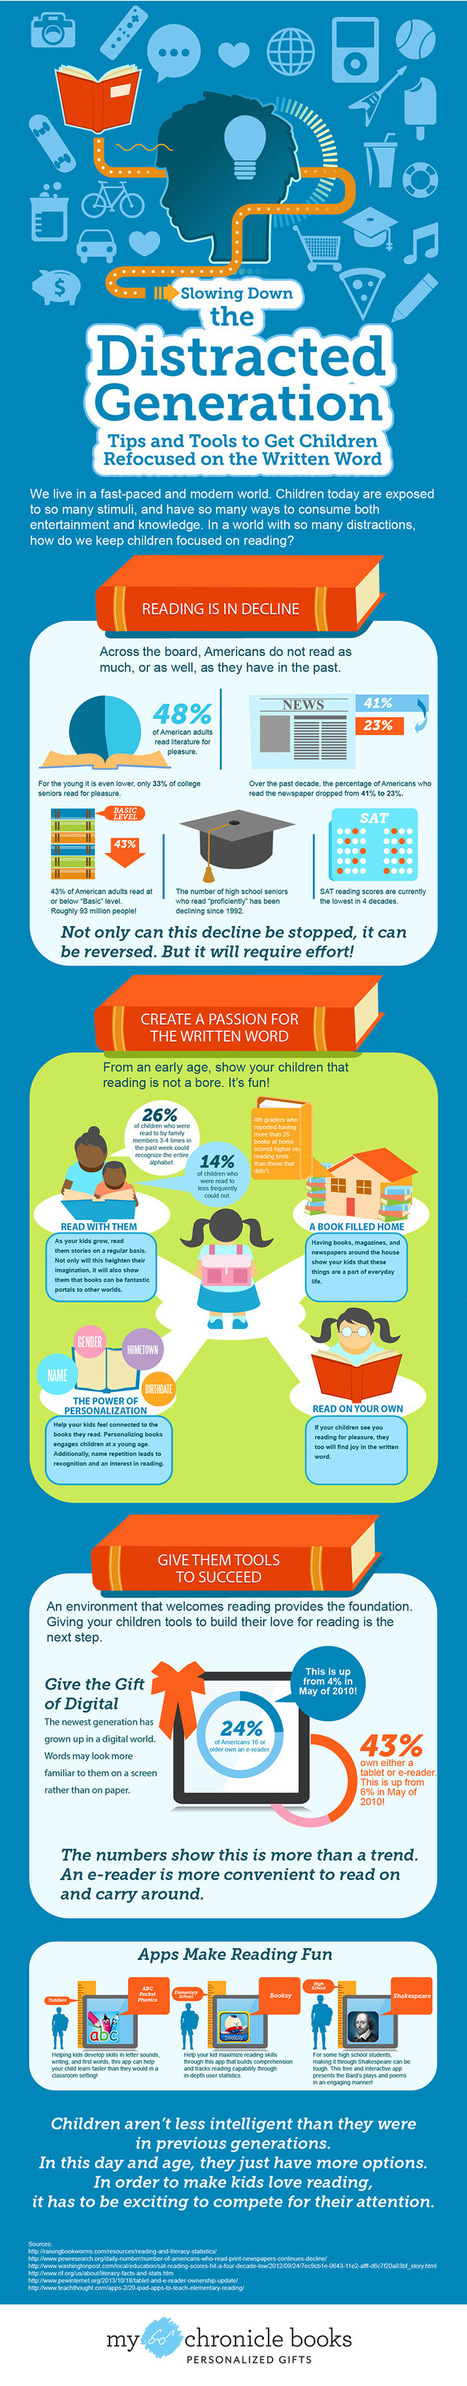 The Distracted Generation Infographic - e-Learning Infographics | The Inquiring Librarian | Scoop.it